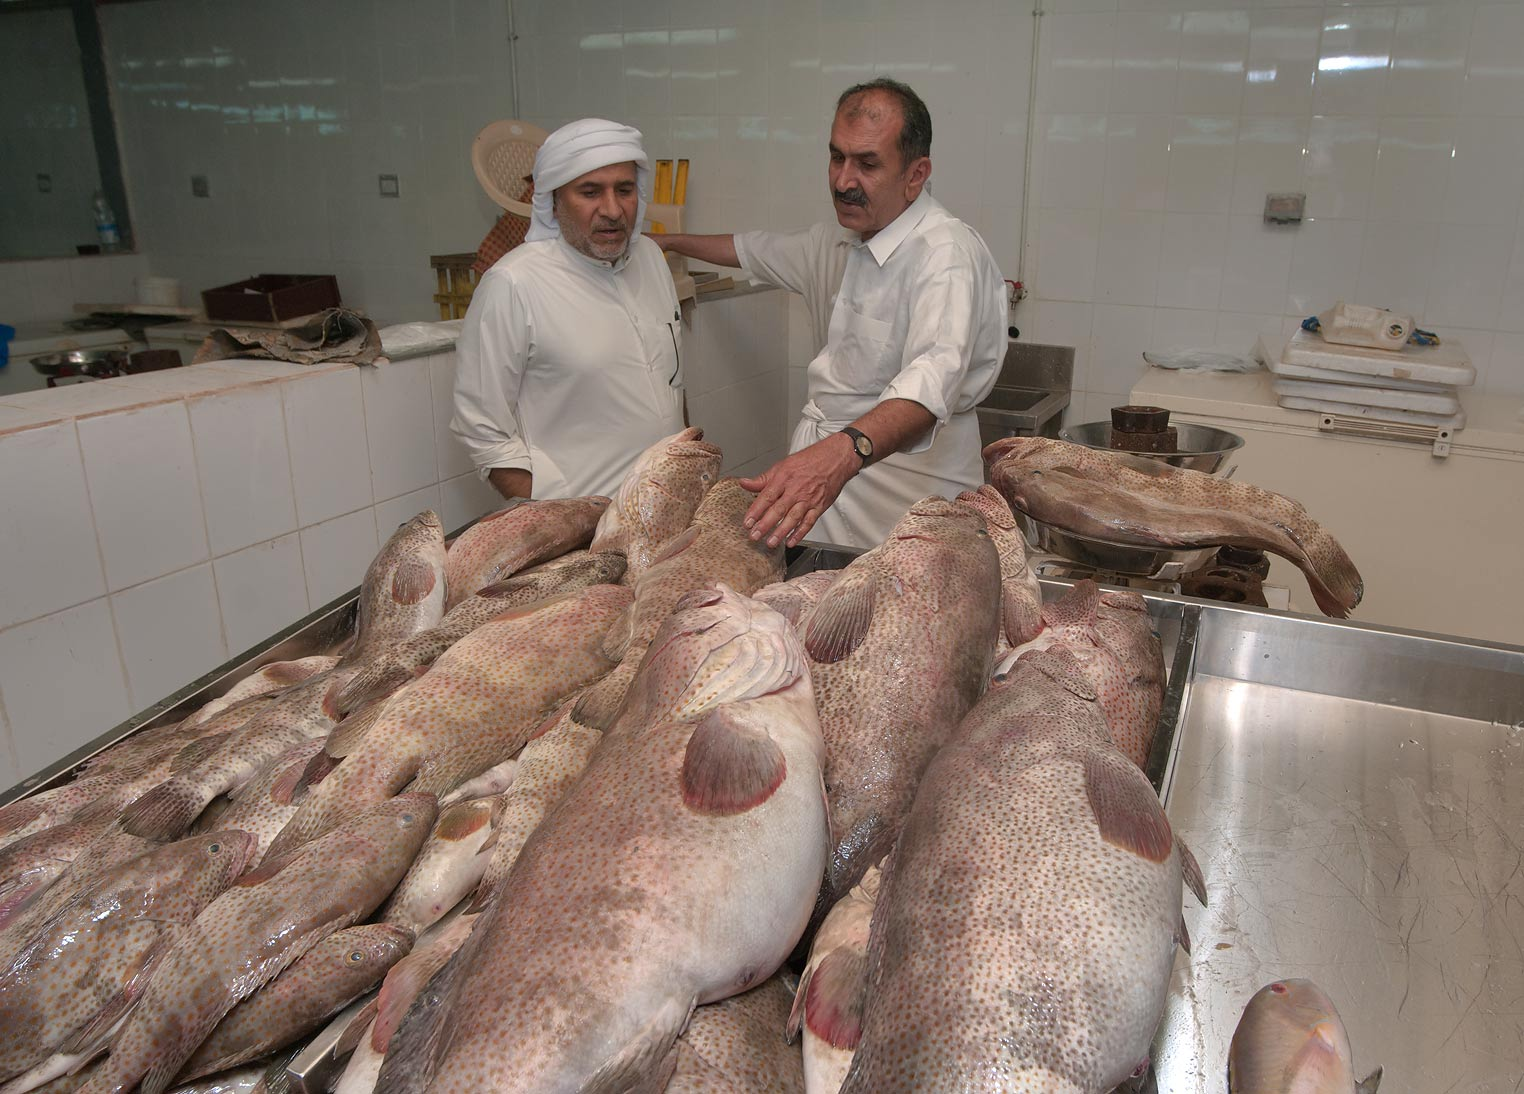 Sellers tapping Hamour Fish in Central Fish Market. Doha, Qatar